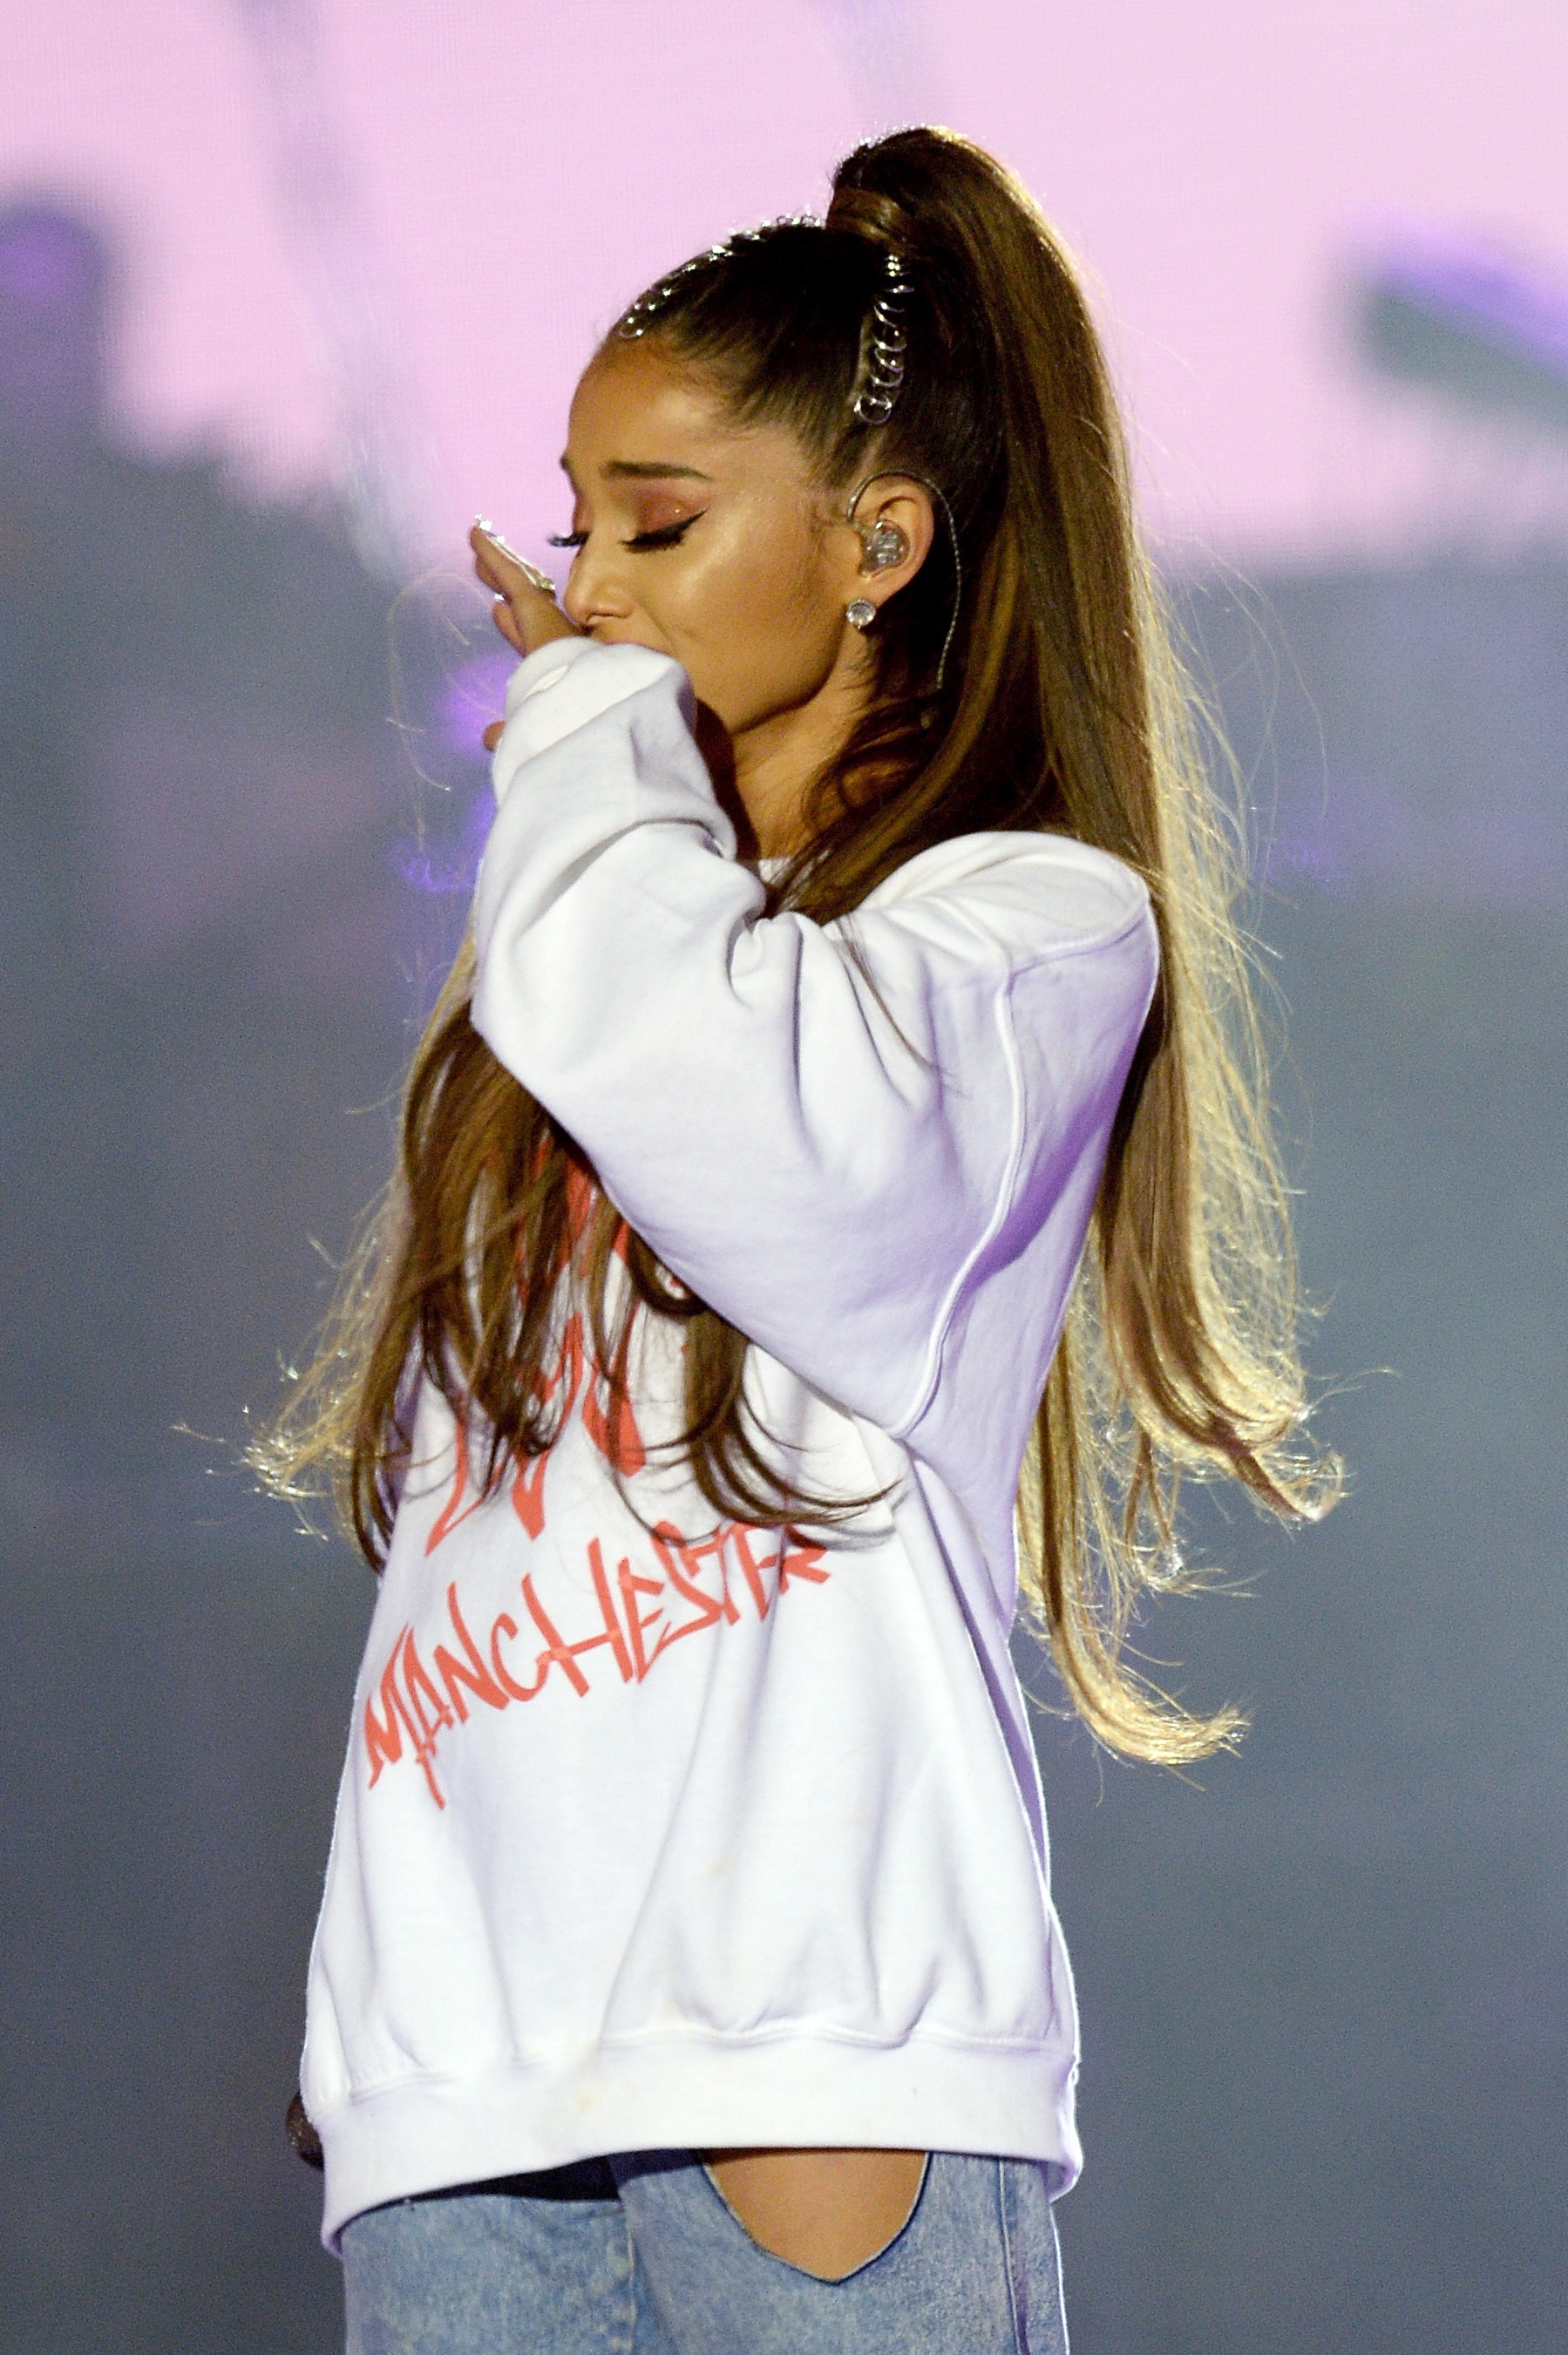 Ariana Grande Reveals Tattoo Marking One Year Since